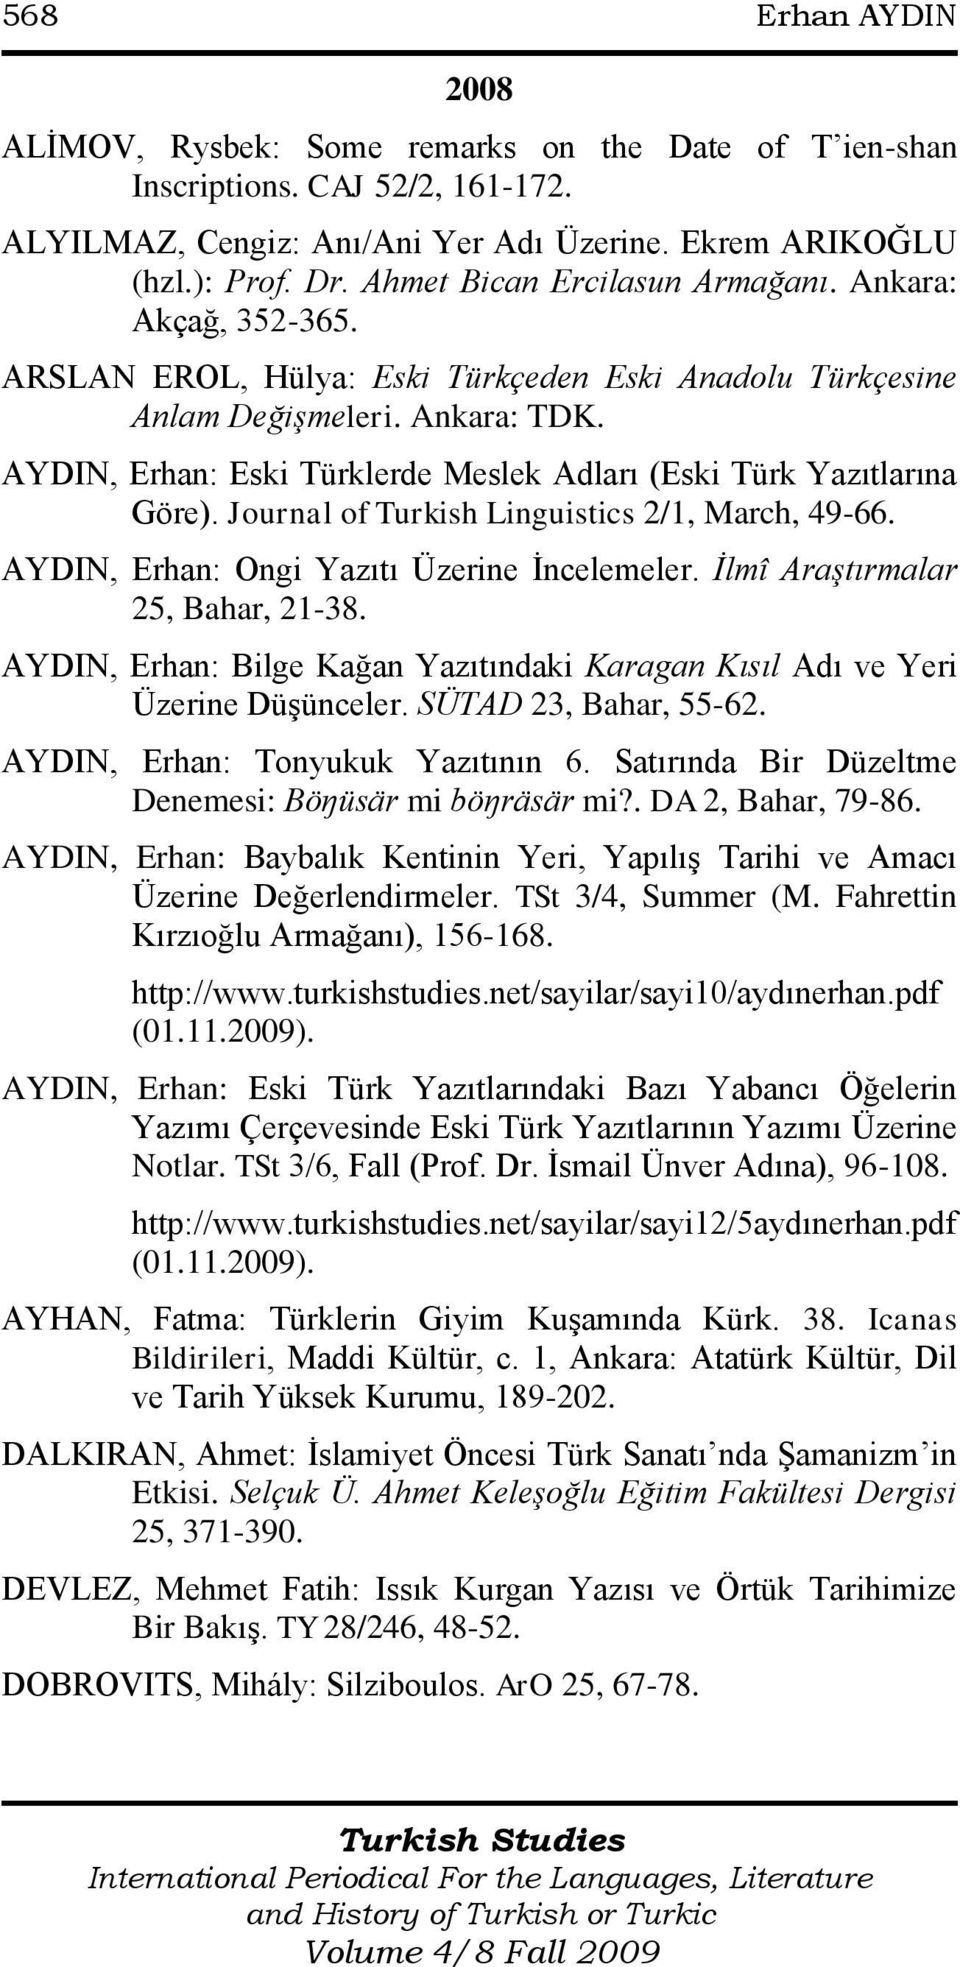 AYDIN, Erhan: Eski Türklerde Meslek Adları (Eski Türk Yazıtlarına Göre). Journal of Turkish Linguistics 2/1, March, 49-66. AYDIN, Erhan: Ongi Yazıtı Üzerine Ġncelemeler.